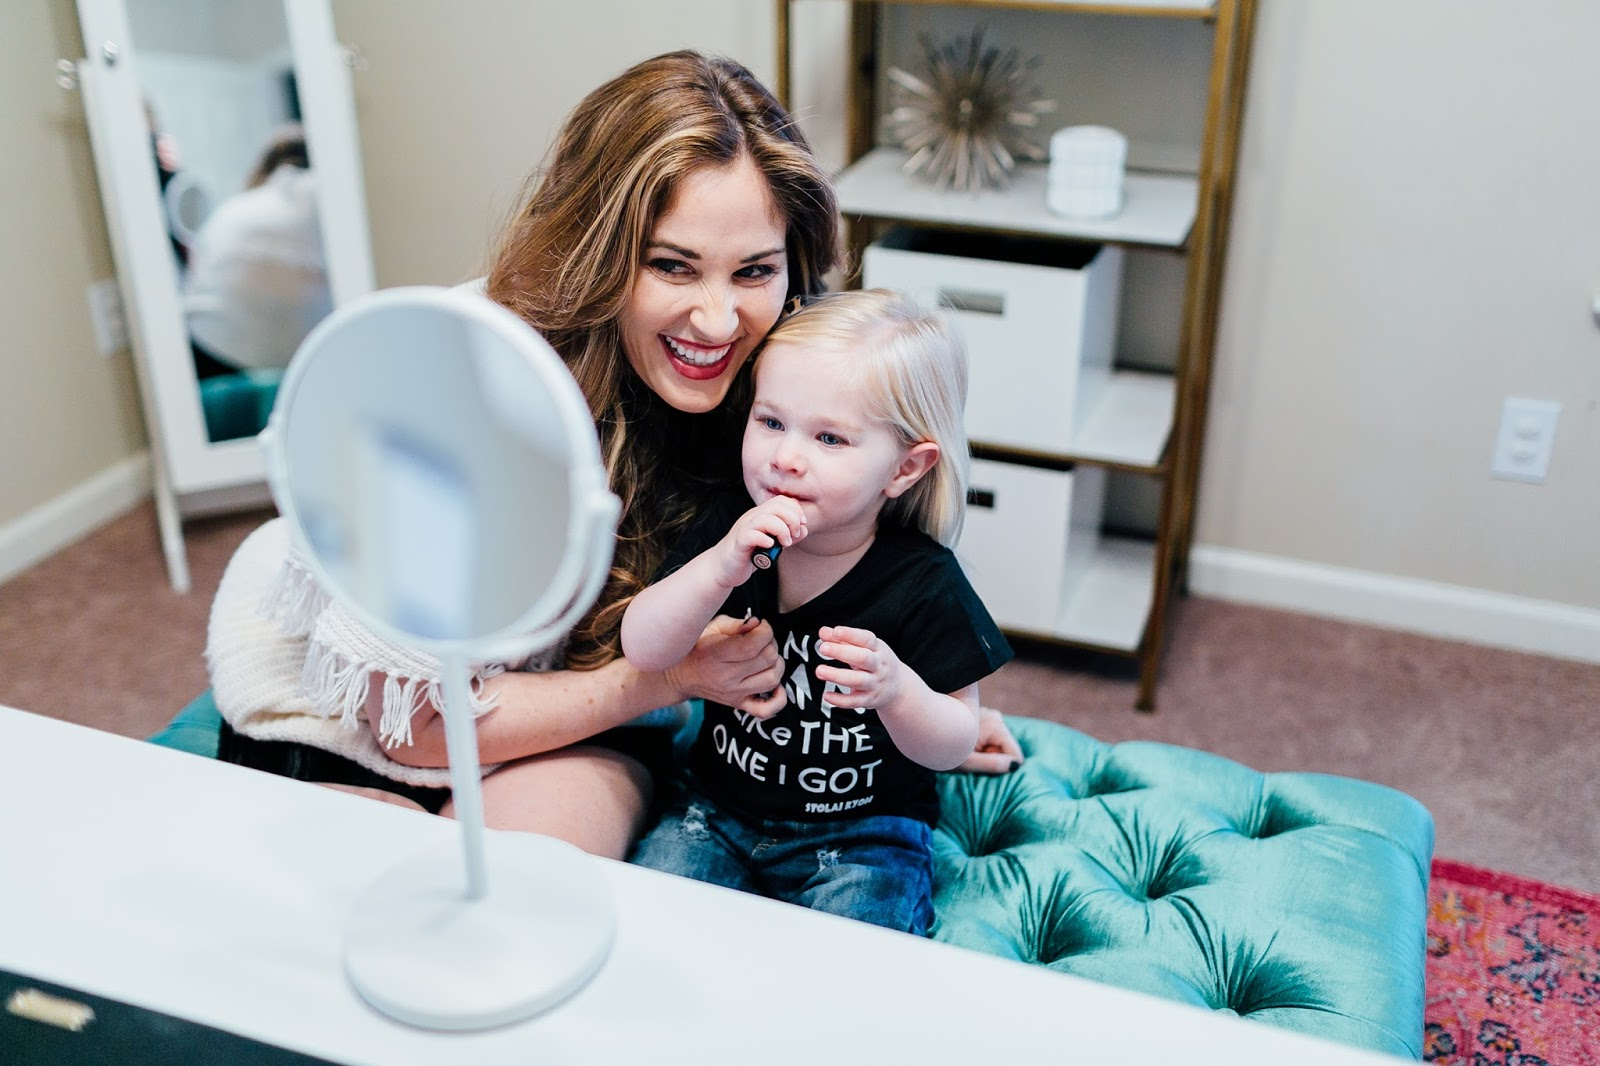 Mamas & Minis Collective - Mother & Daughter Date Ideas Perfect for Mother's Day by Mommy blogger Laura from Walking in Memphis in High Heels